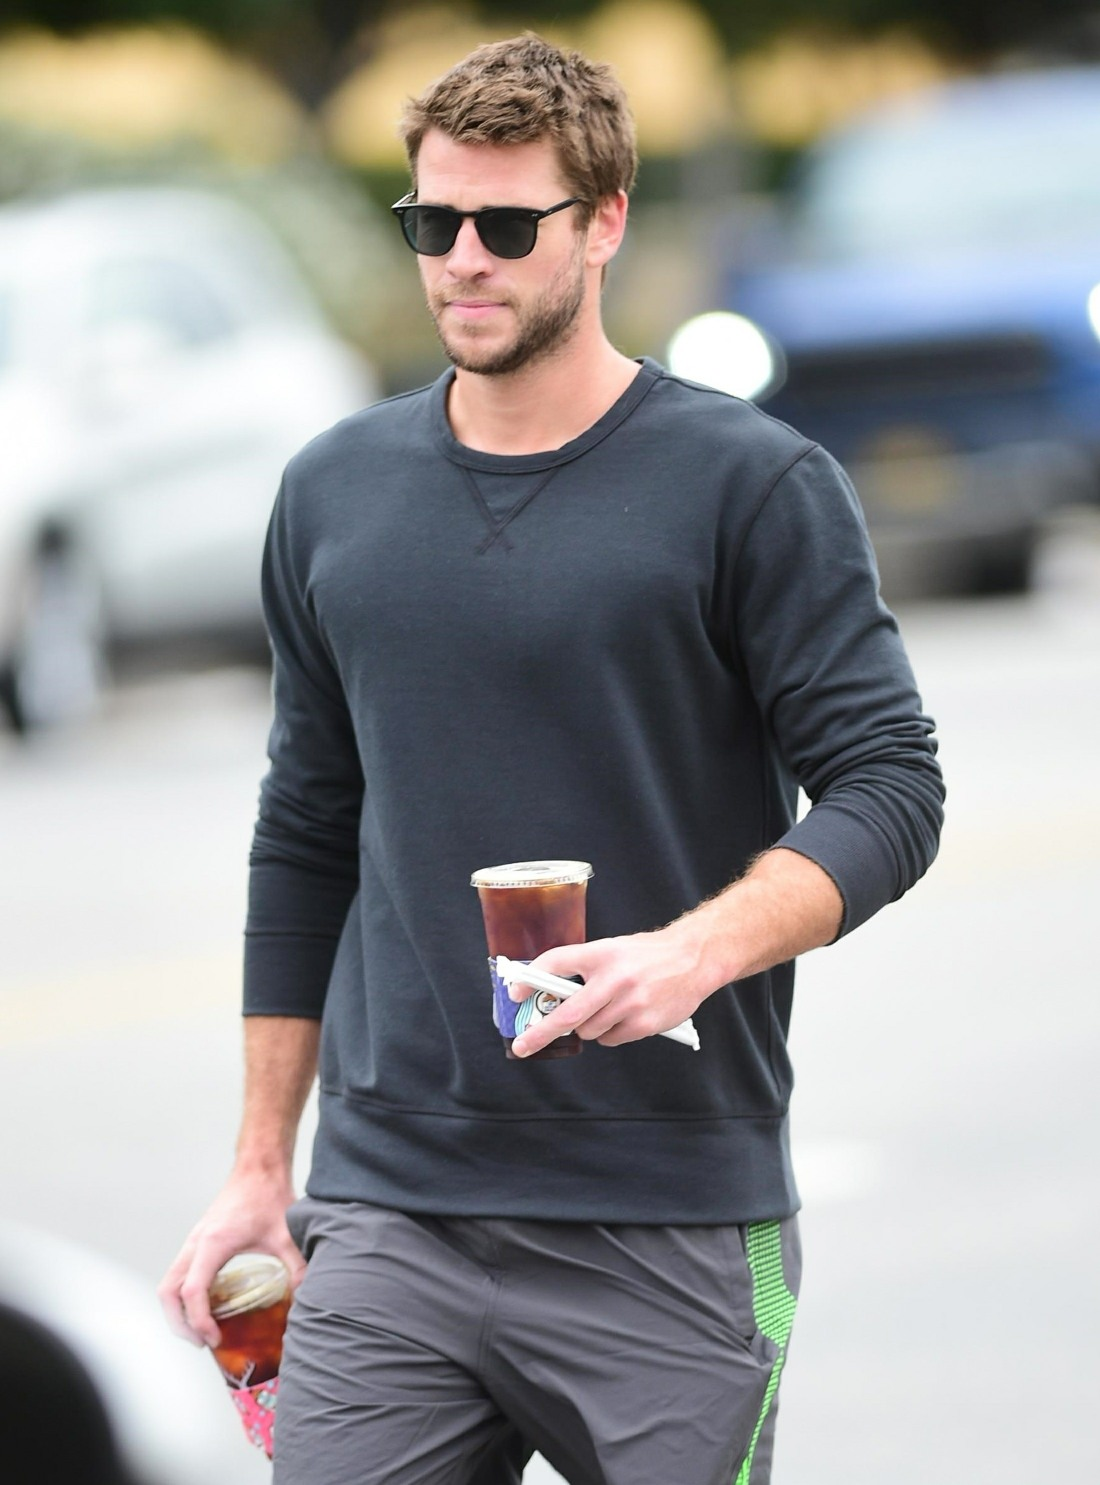 Liam Hemsworth stops by Alfred Coffee for his Monday caffeine fix